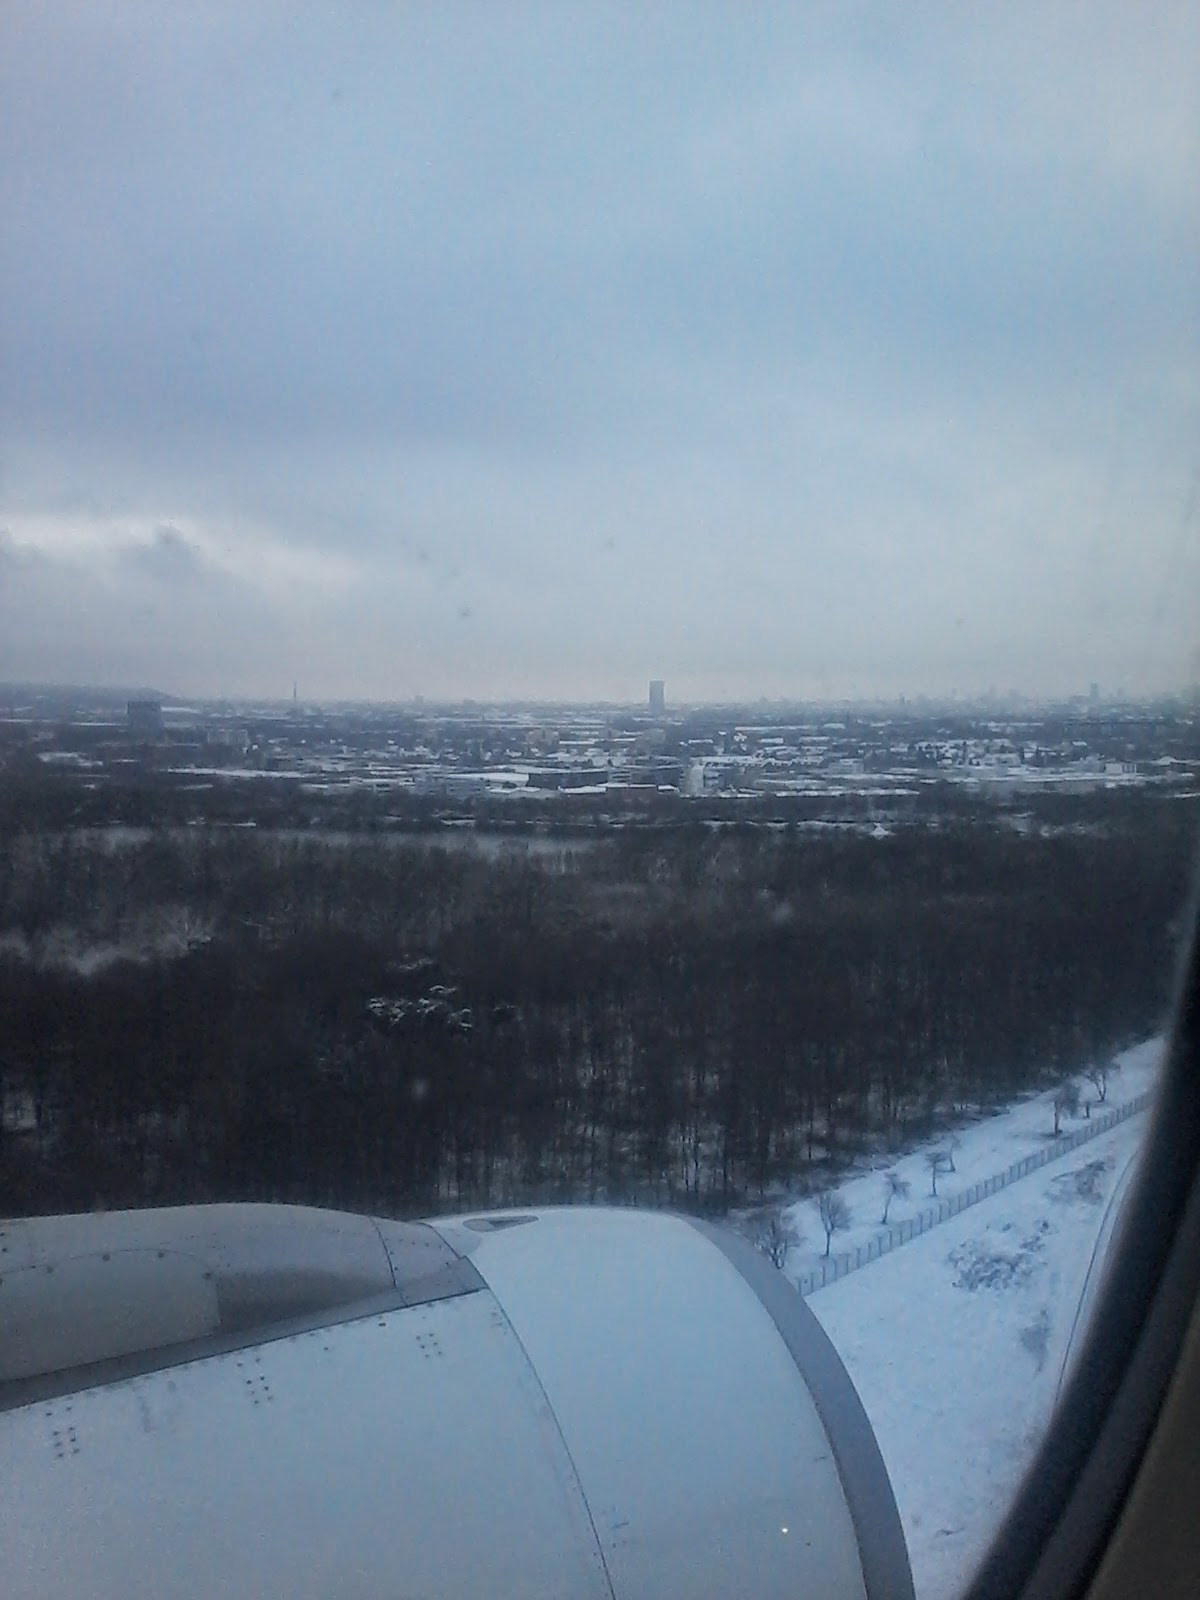 On short final to DUS